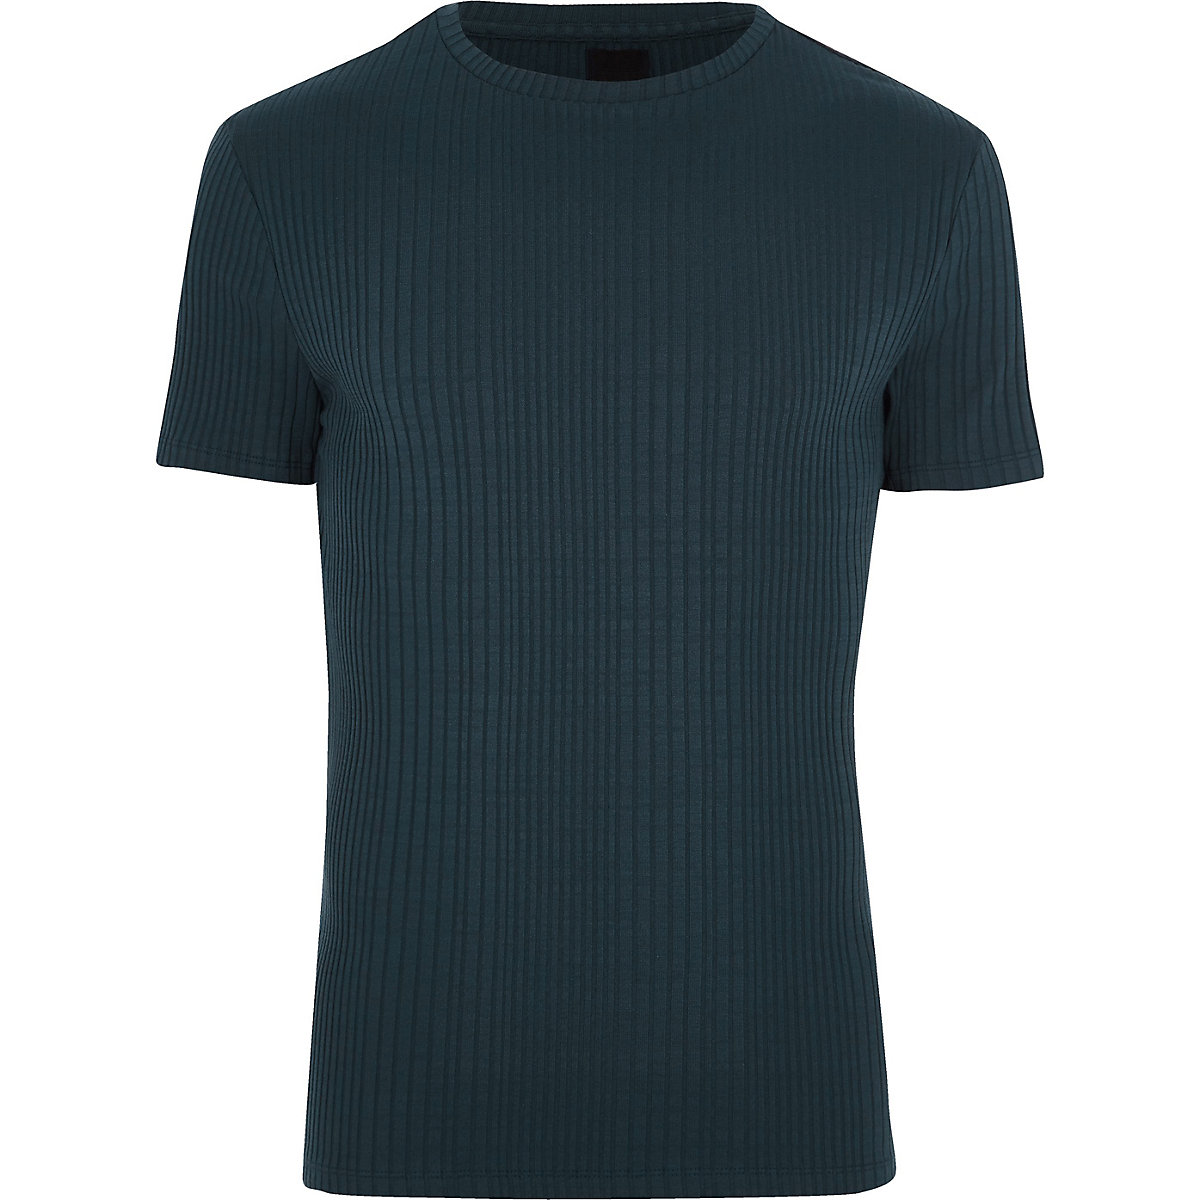 Navy ribbed muscle fit crew neck T-shirt